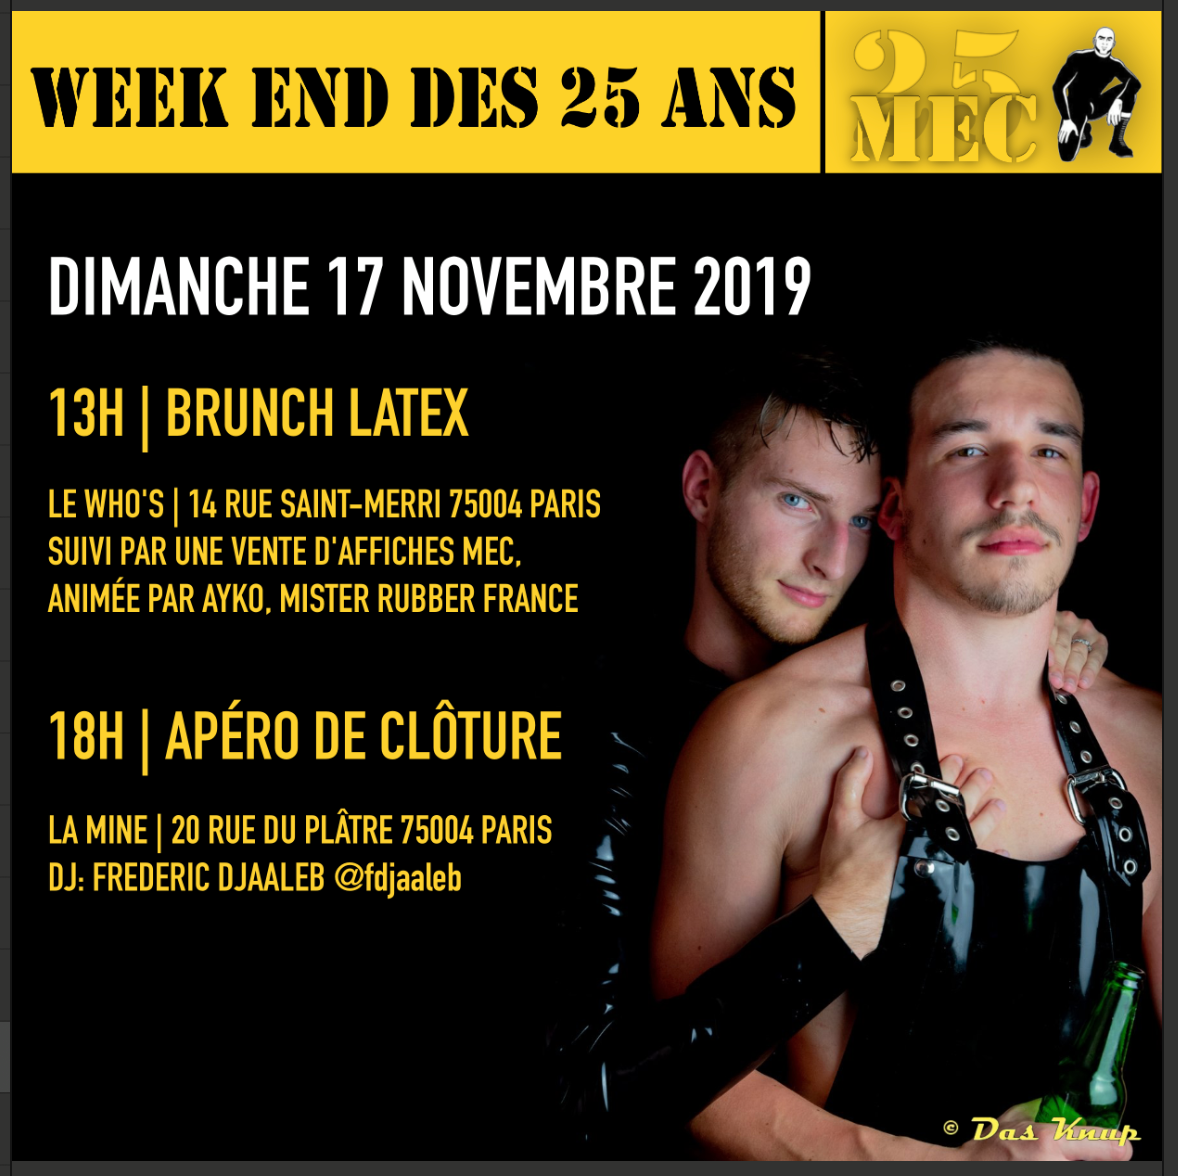 Apéro de Cloture / Closing Drinks - Weekend des 25 ans